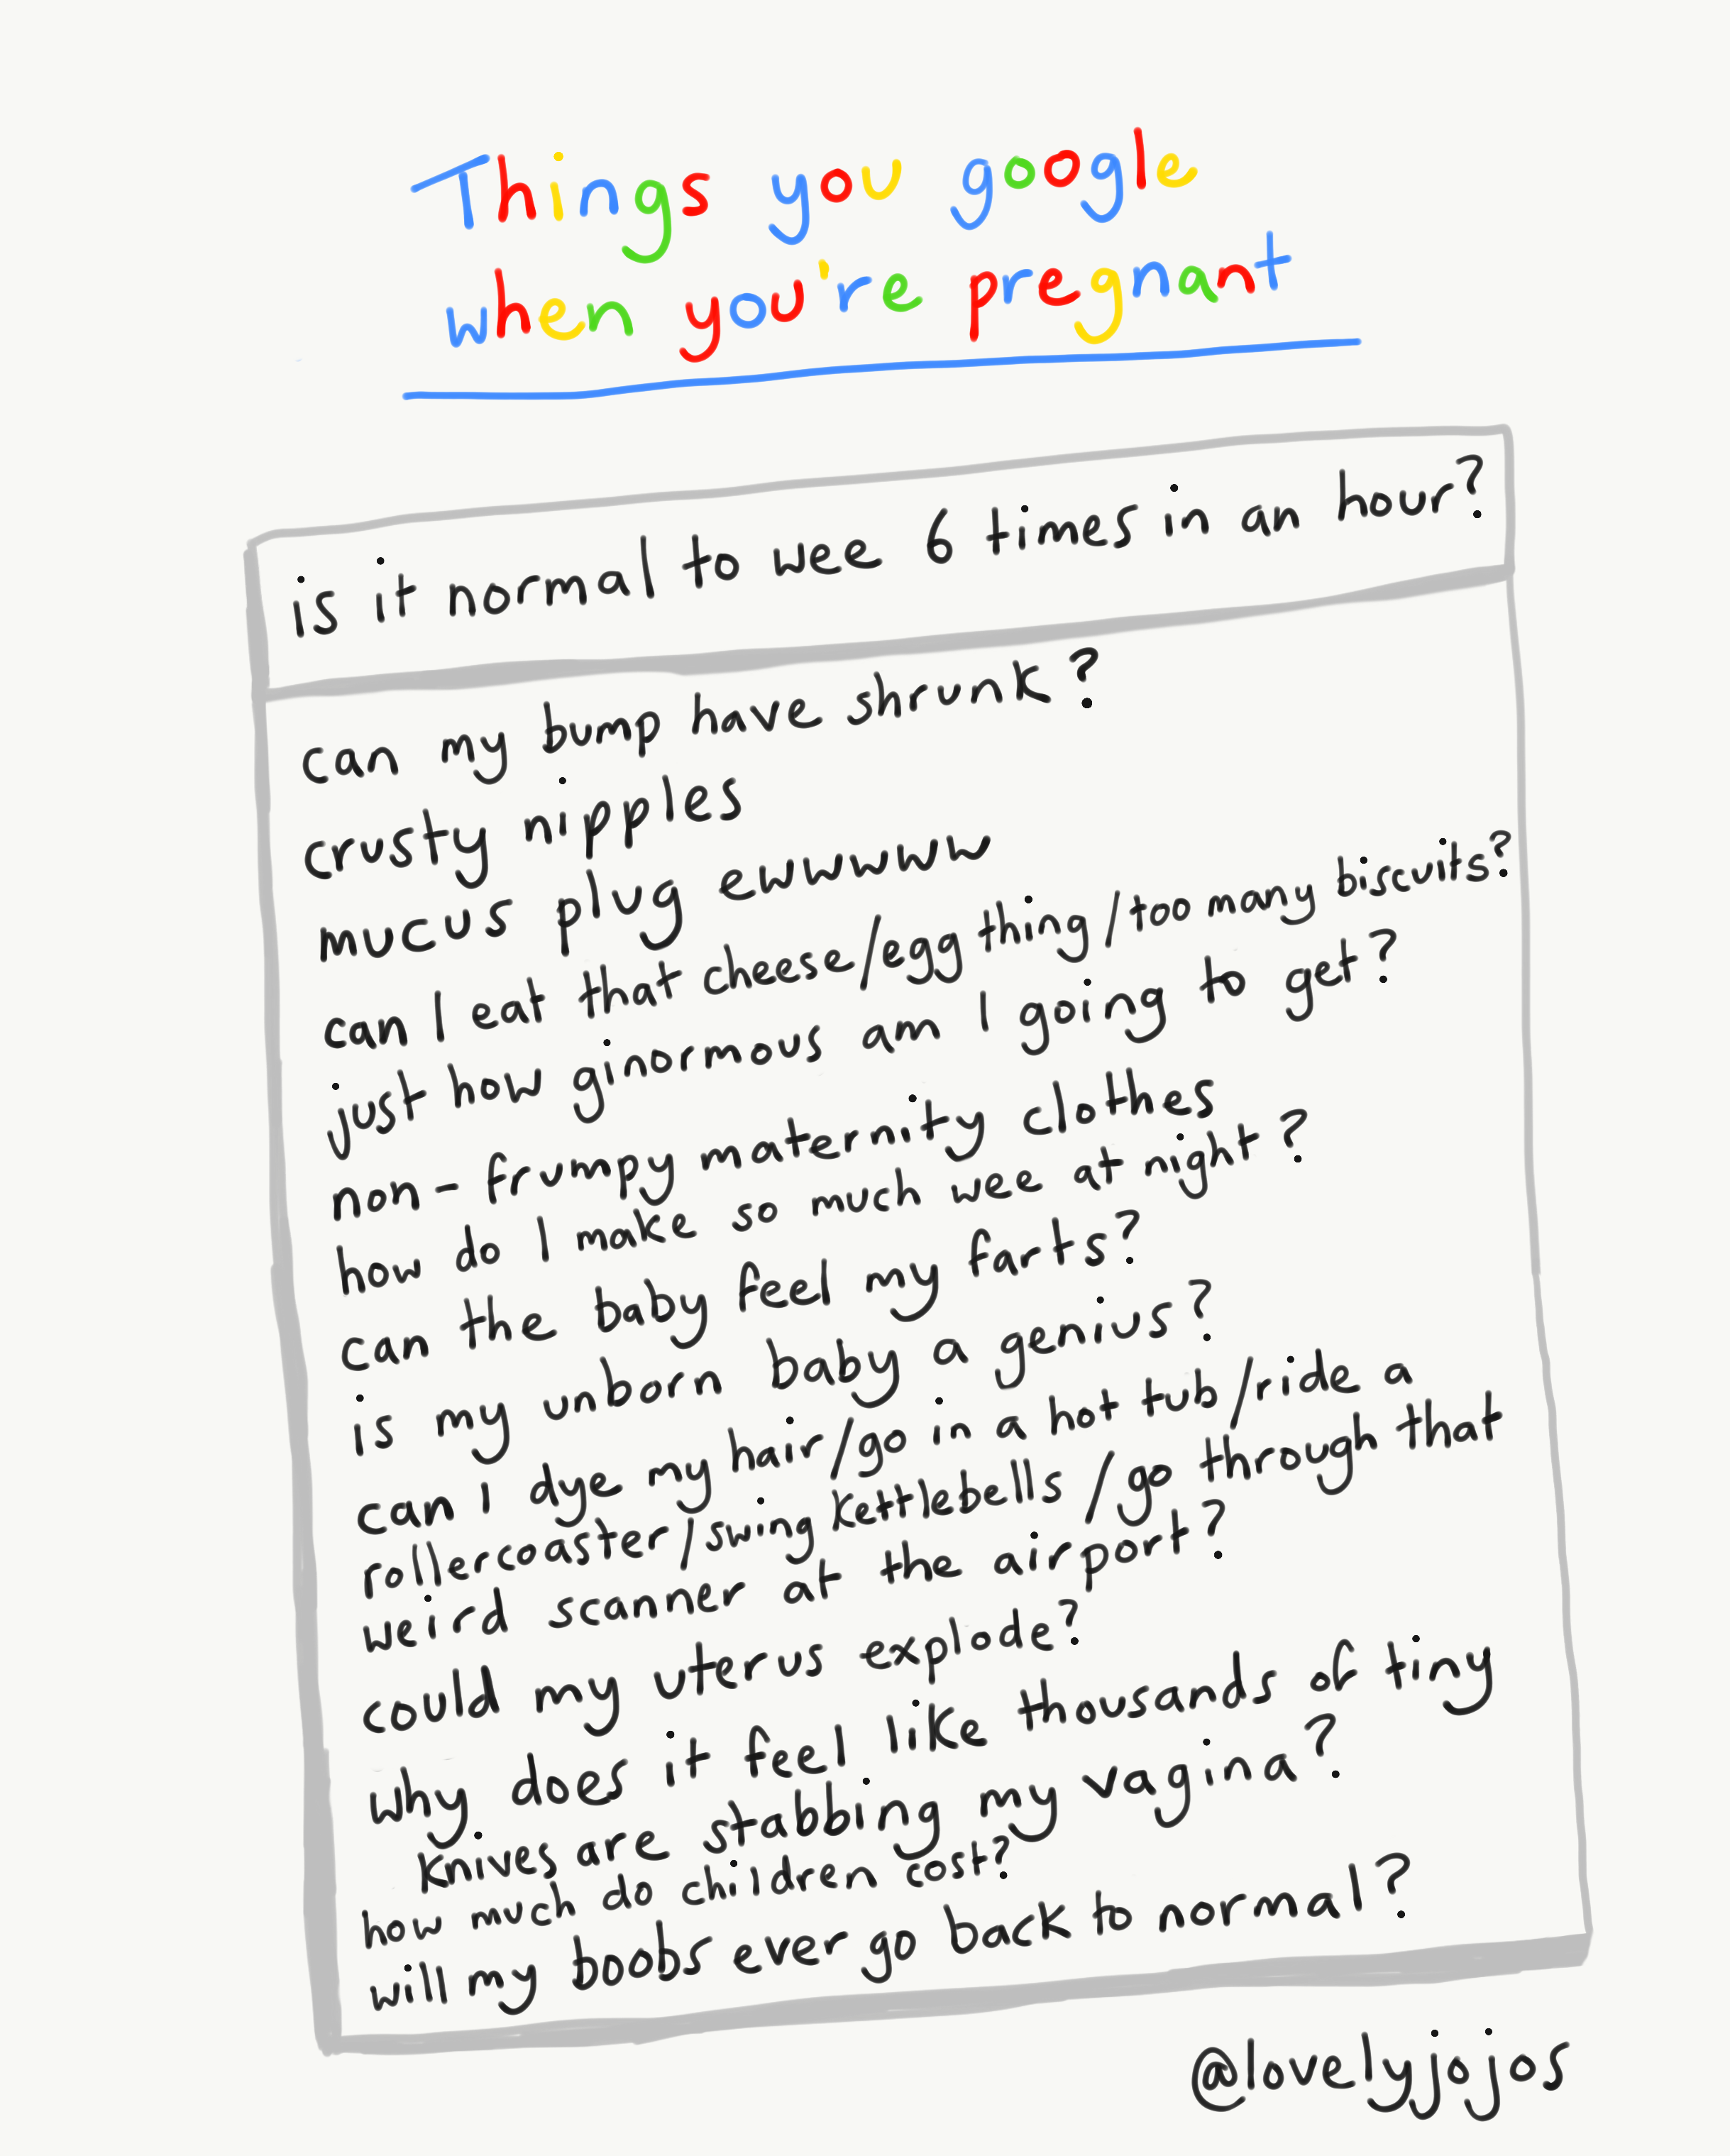 Things you google when pregnant.png